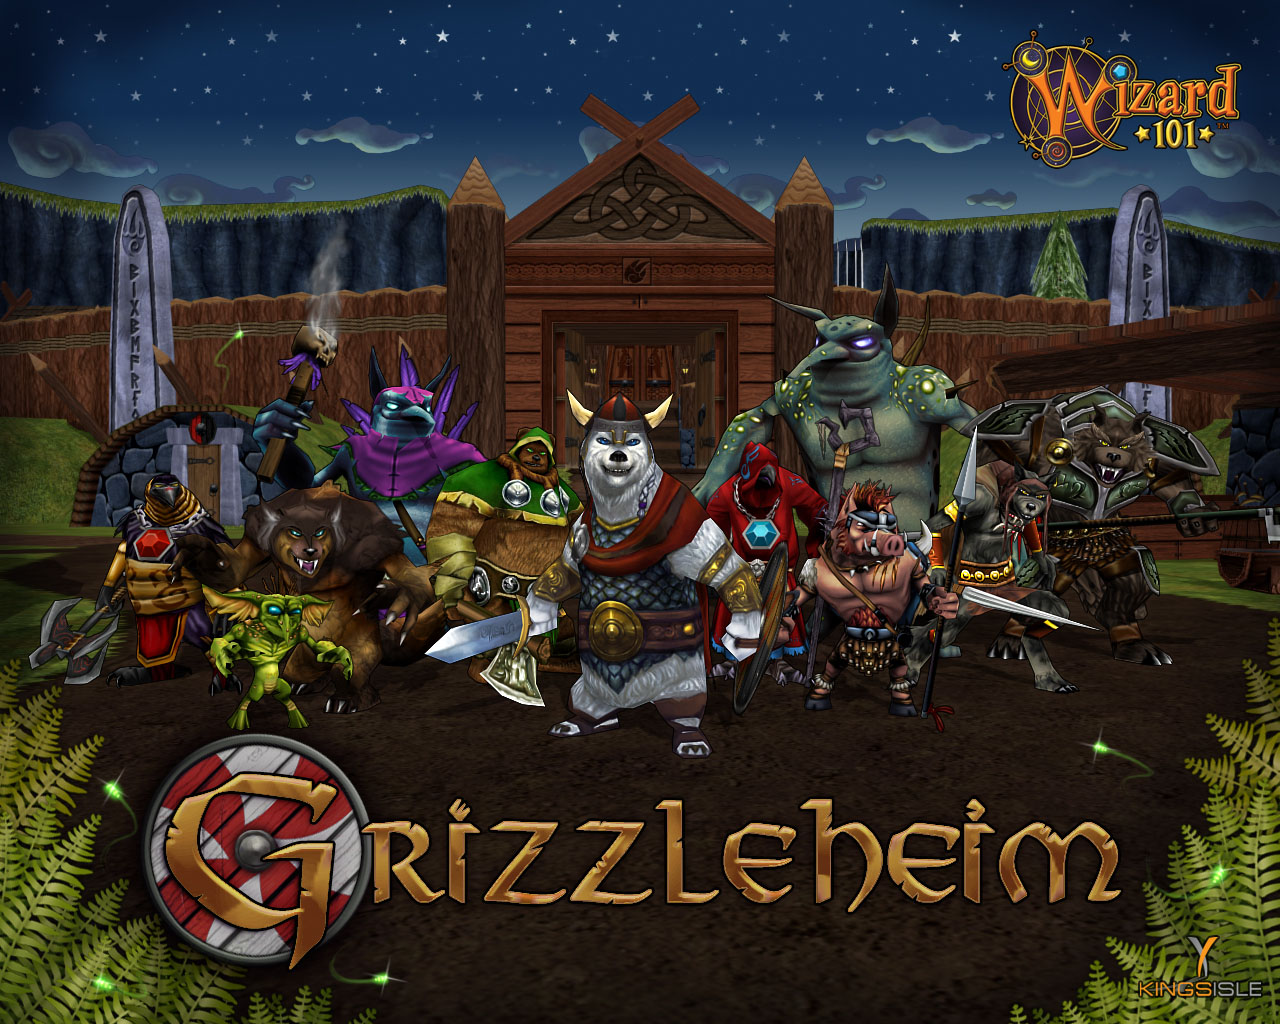 Free download Wizard 101 wallpapers [1280x1024] for your